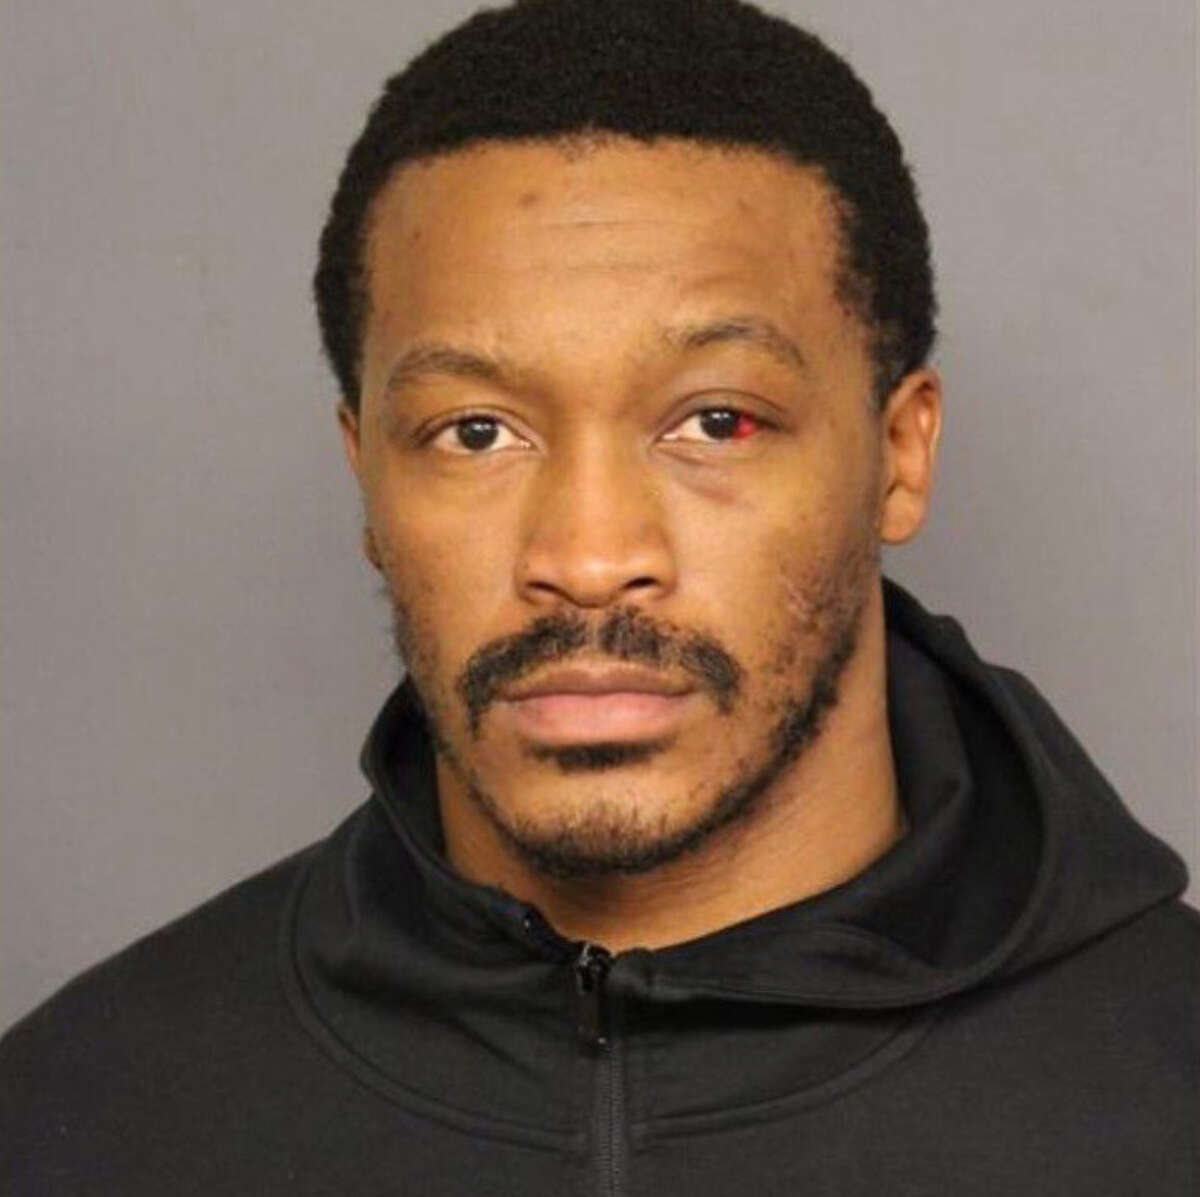 PHOTOS: Demaryius Thomas' time with the Texans A mugshot provided by the Denver Police Department after Demaryius Thomas was arrested and charged with vehicular assault on Feb. 27, 2019.